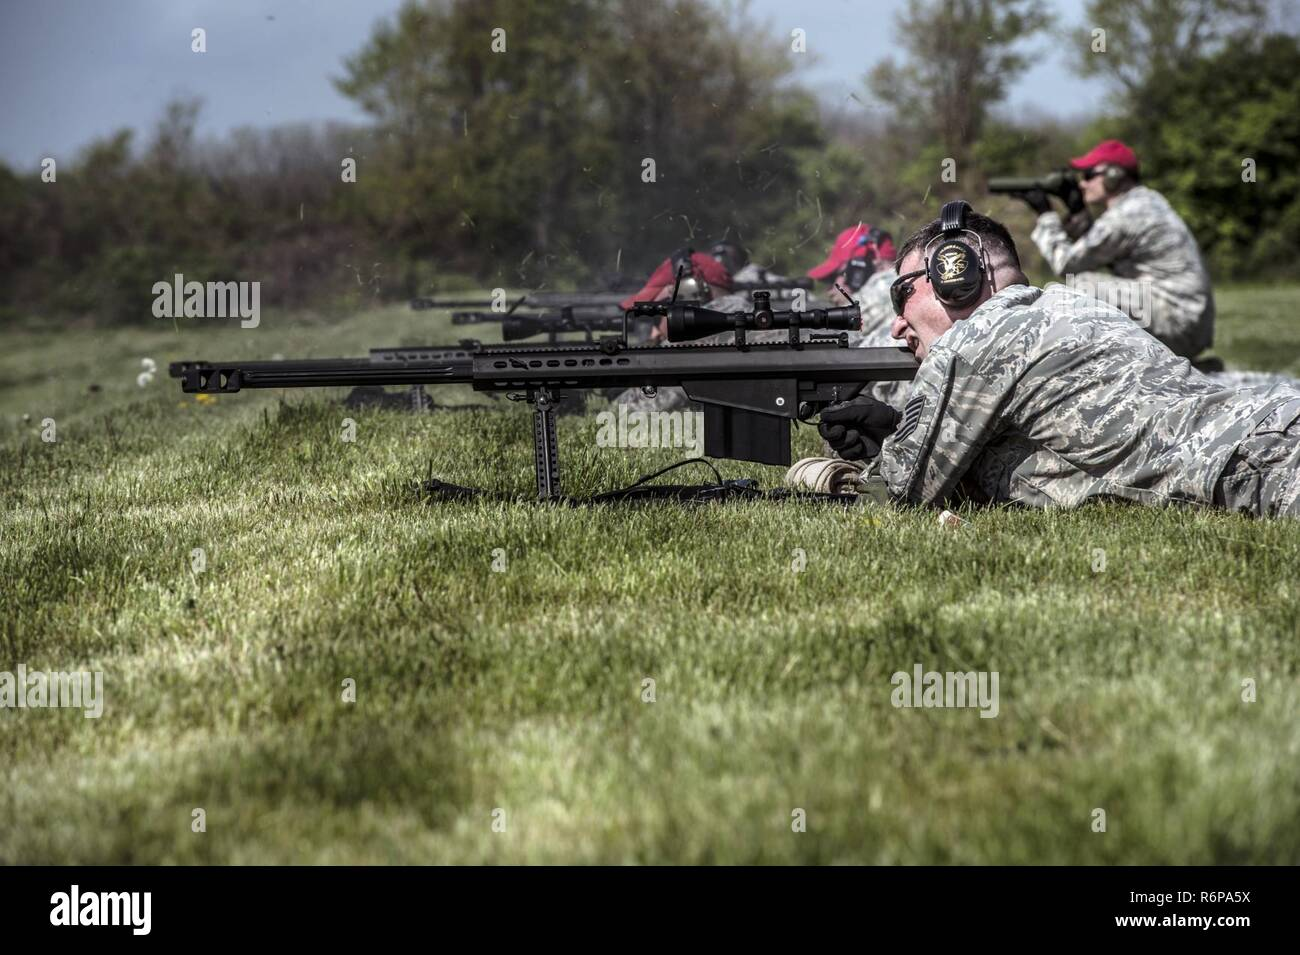 Anti Materiel Rifle anti materiel stock photos & anti materiel stock images - alamy